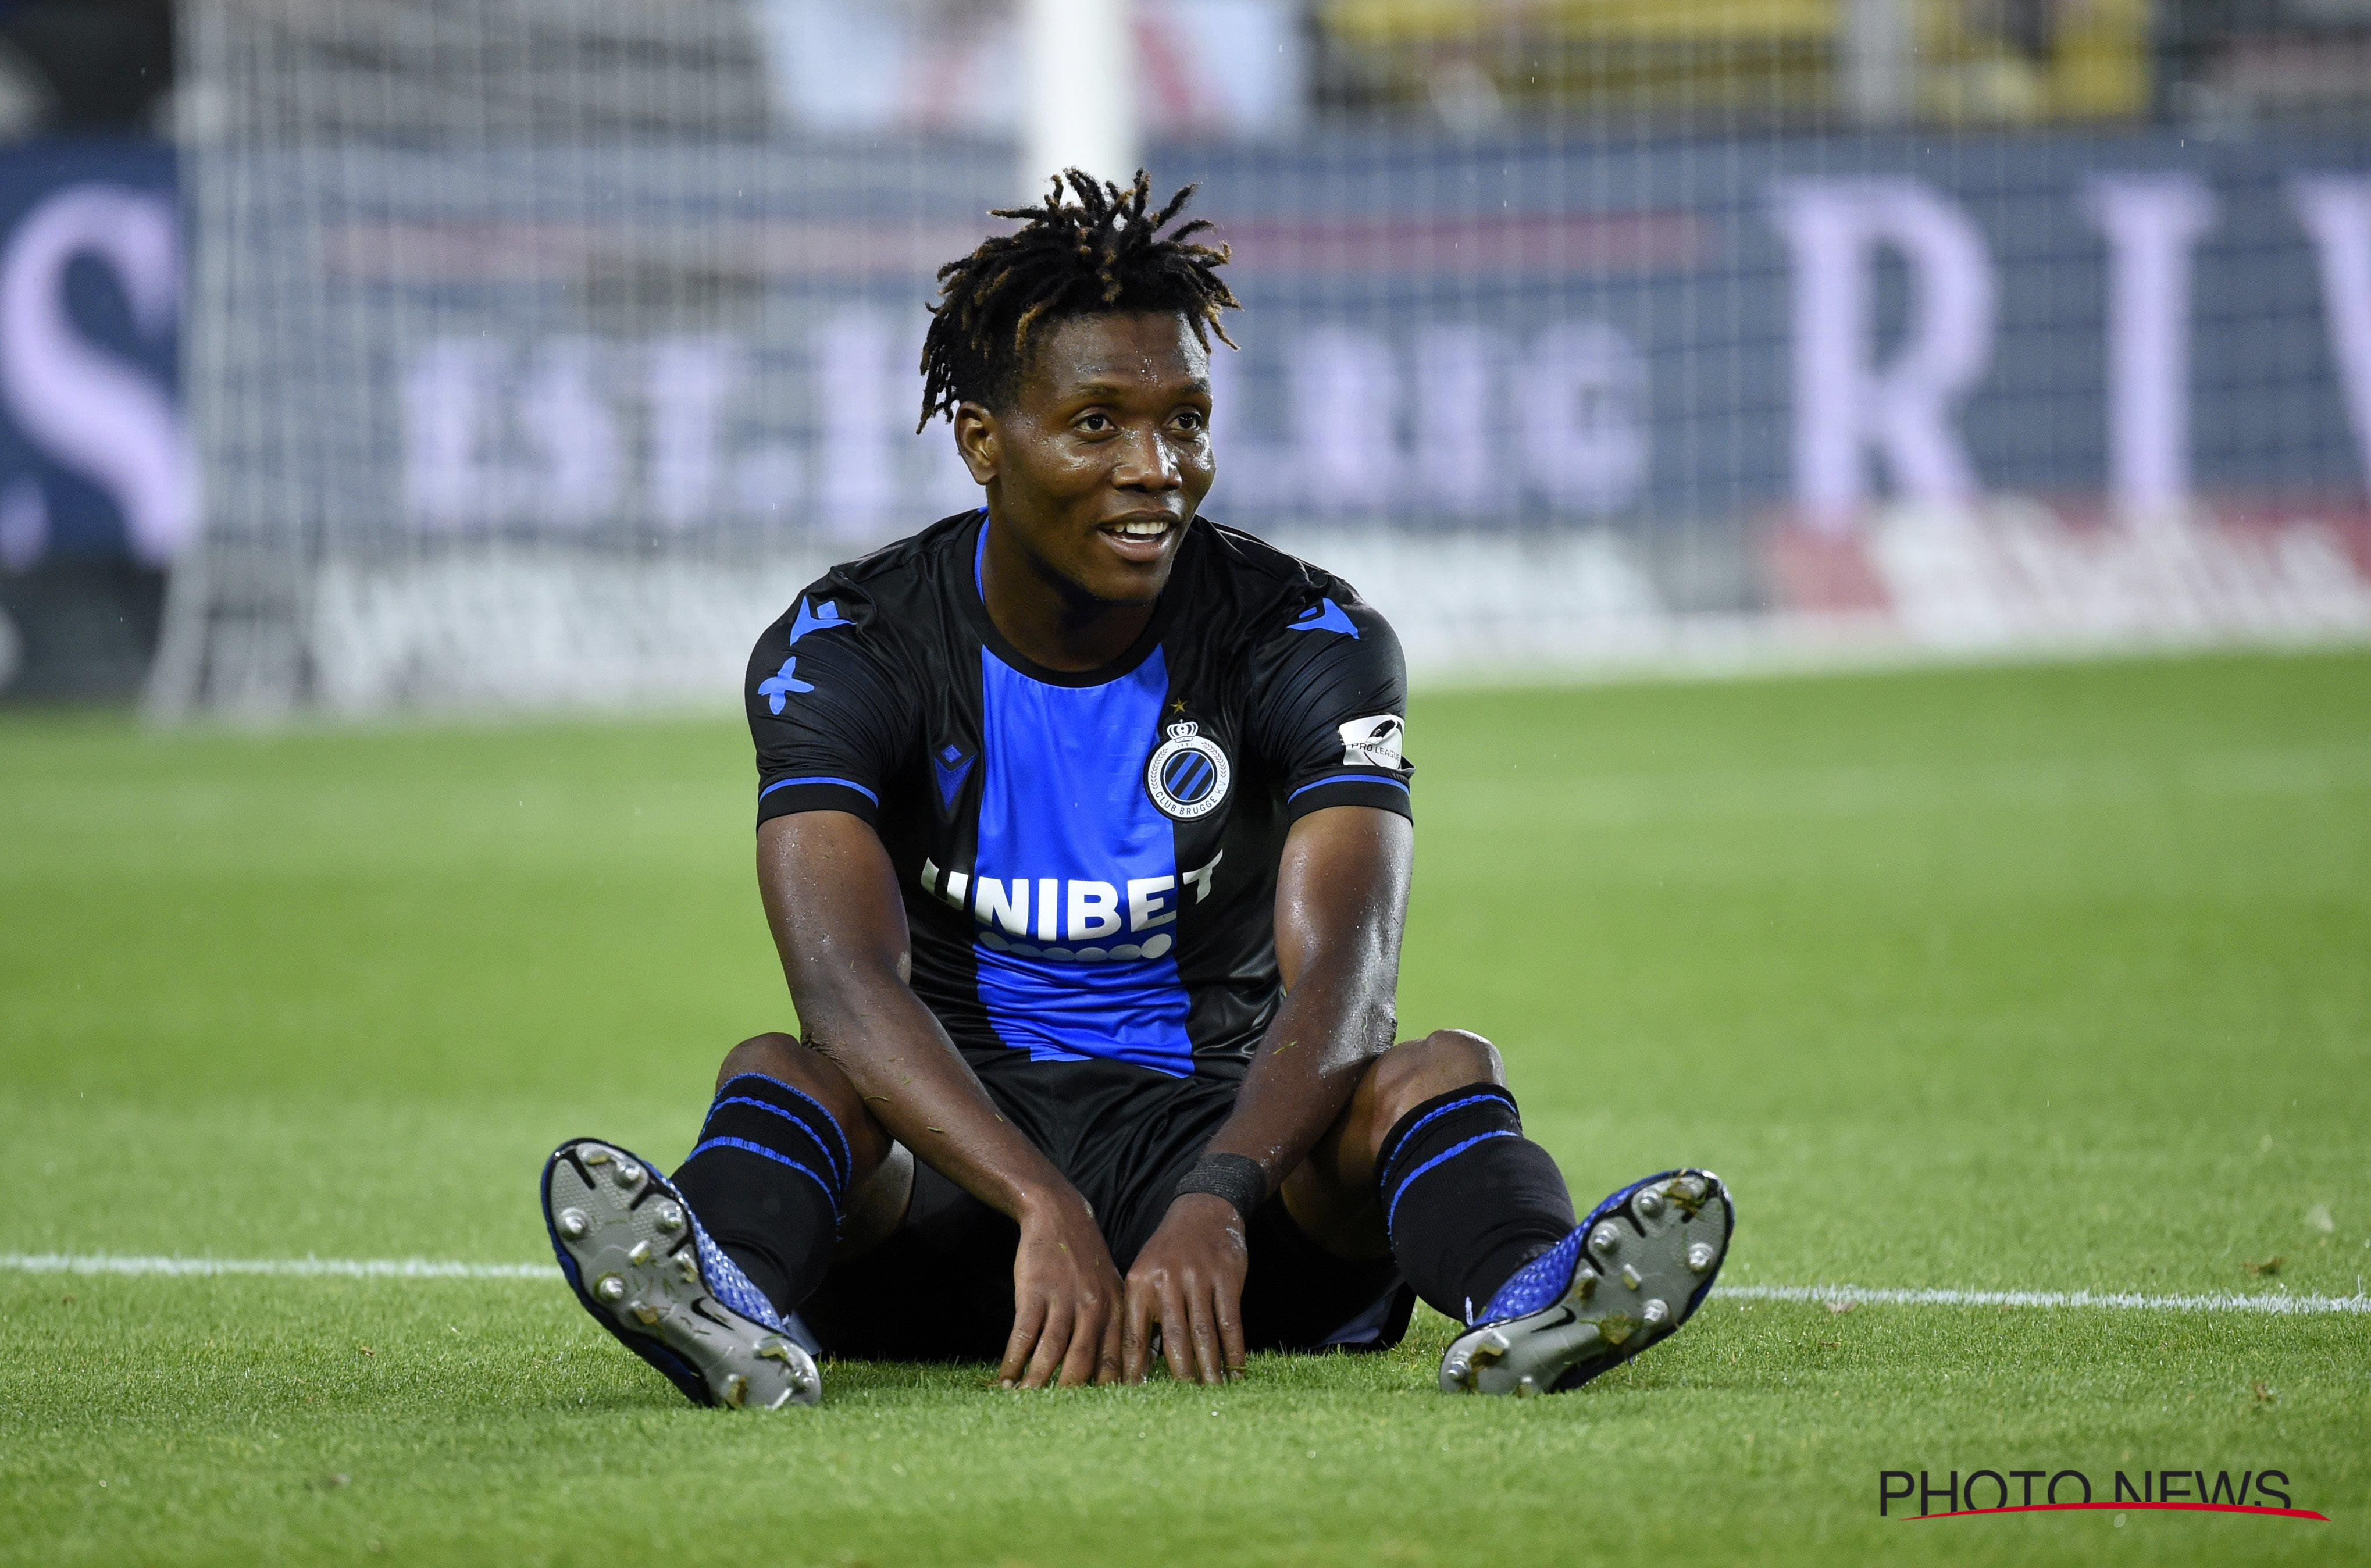 UCL Playoffs: Okereke  Stars In Brugge Away Win At LASK, Olayinka Also  Action For Slavia Prague